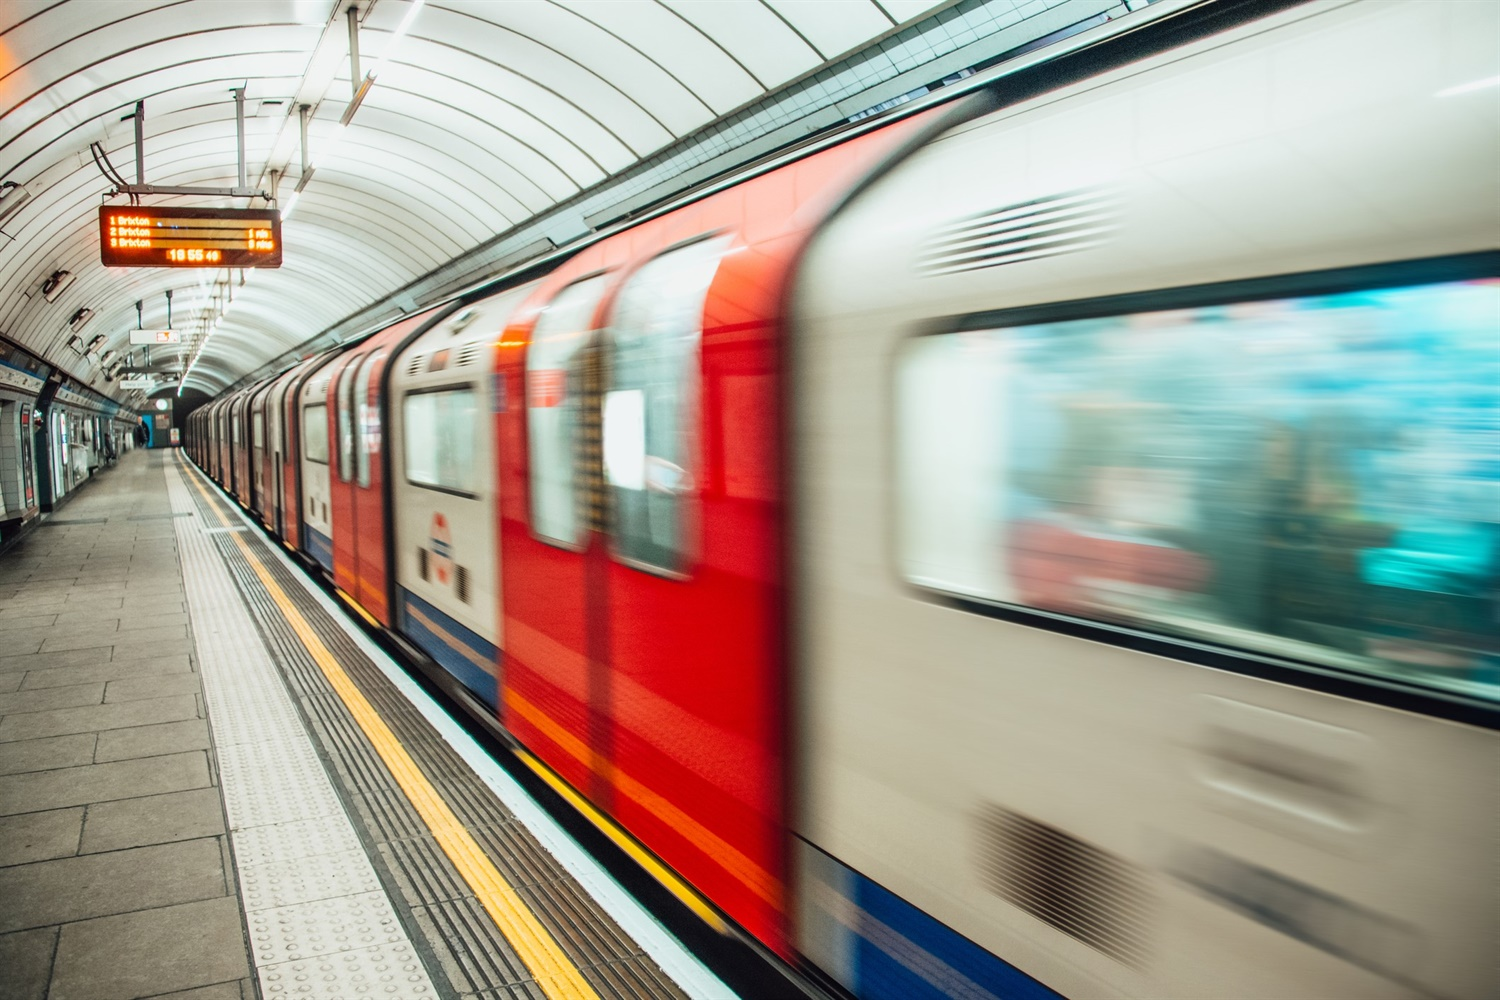 How will London's transport network find a new normal?